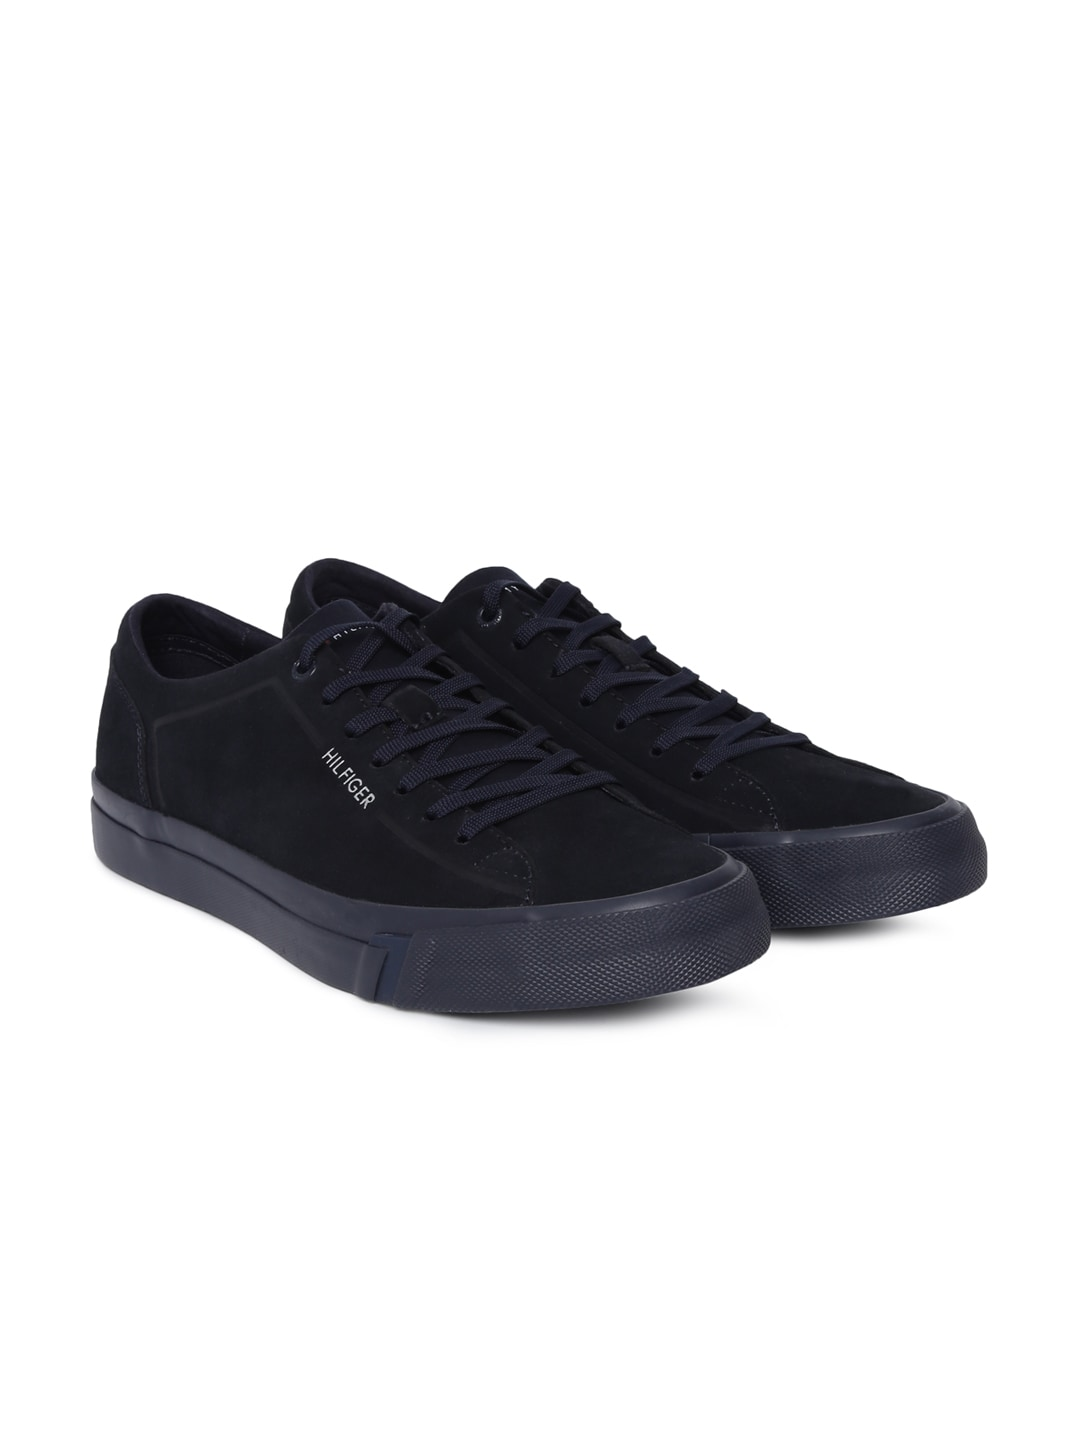 8c16f9675105 Tommy Hilfiger Shoes - Buy Tommy Hilfiger Shoes Online - Myntra